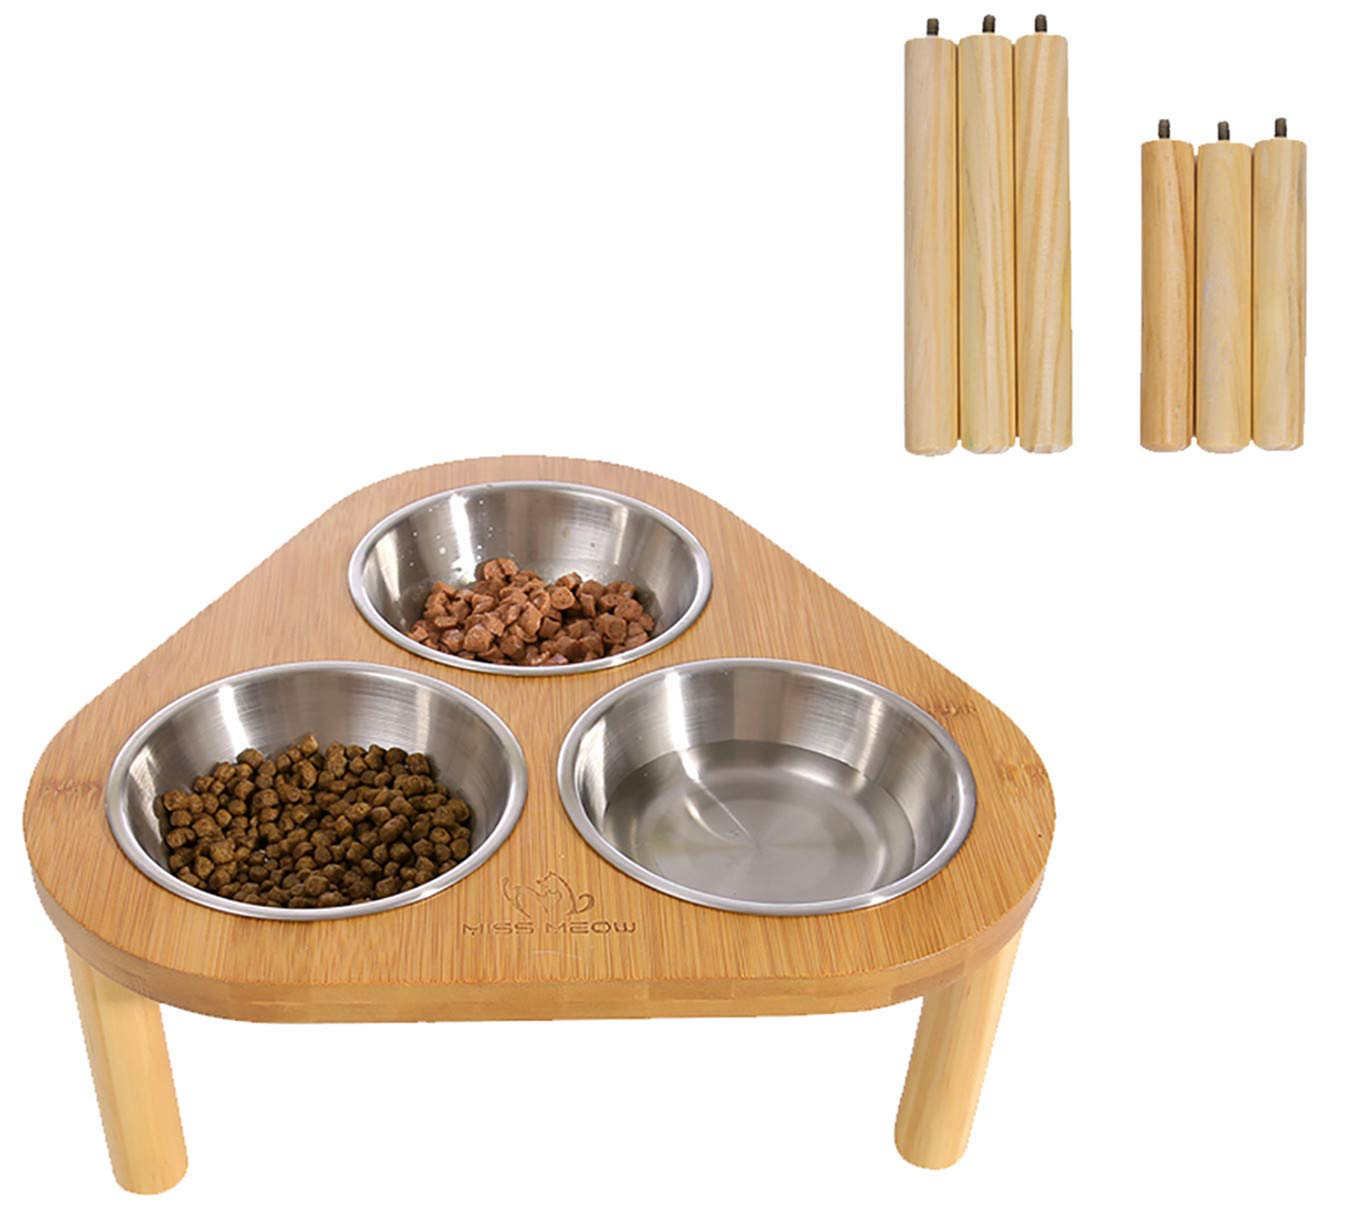 Miss Meow Raised Cat Dog Bowls with Stand Feeder, Elevated Bamboo Stand with 3 Stainless Still Bowls, Anti Slip and Removable Feet. (Stainless Still Bowls) by Miss Meow